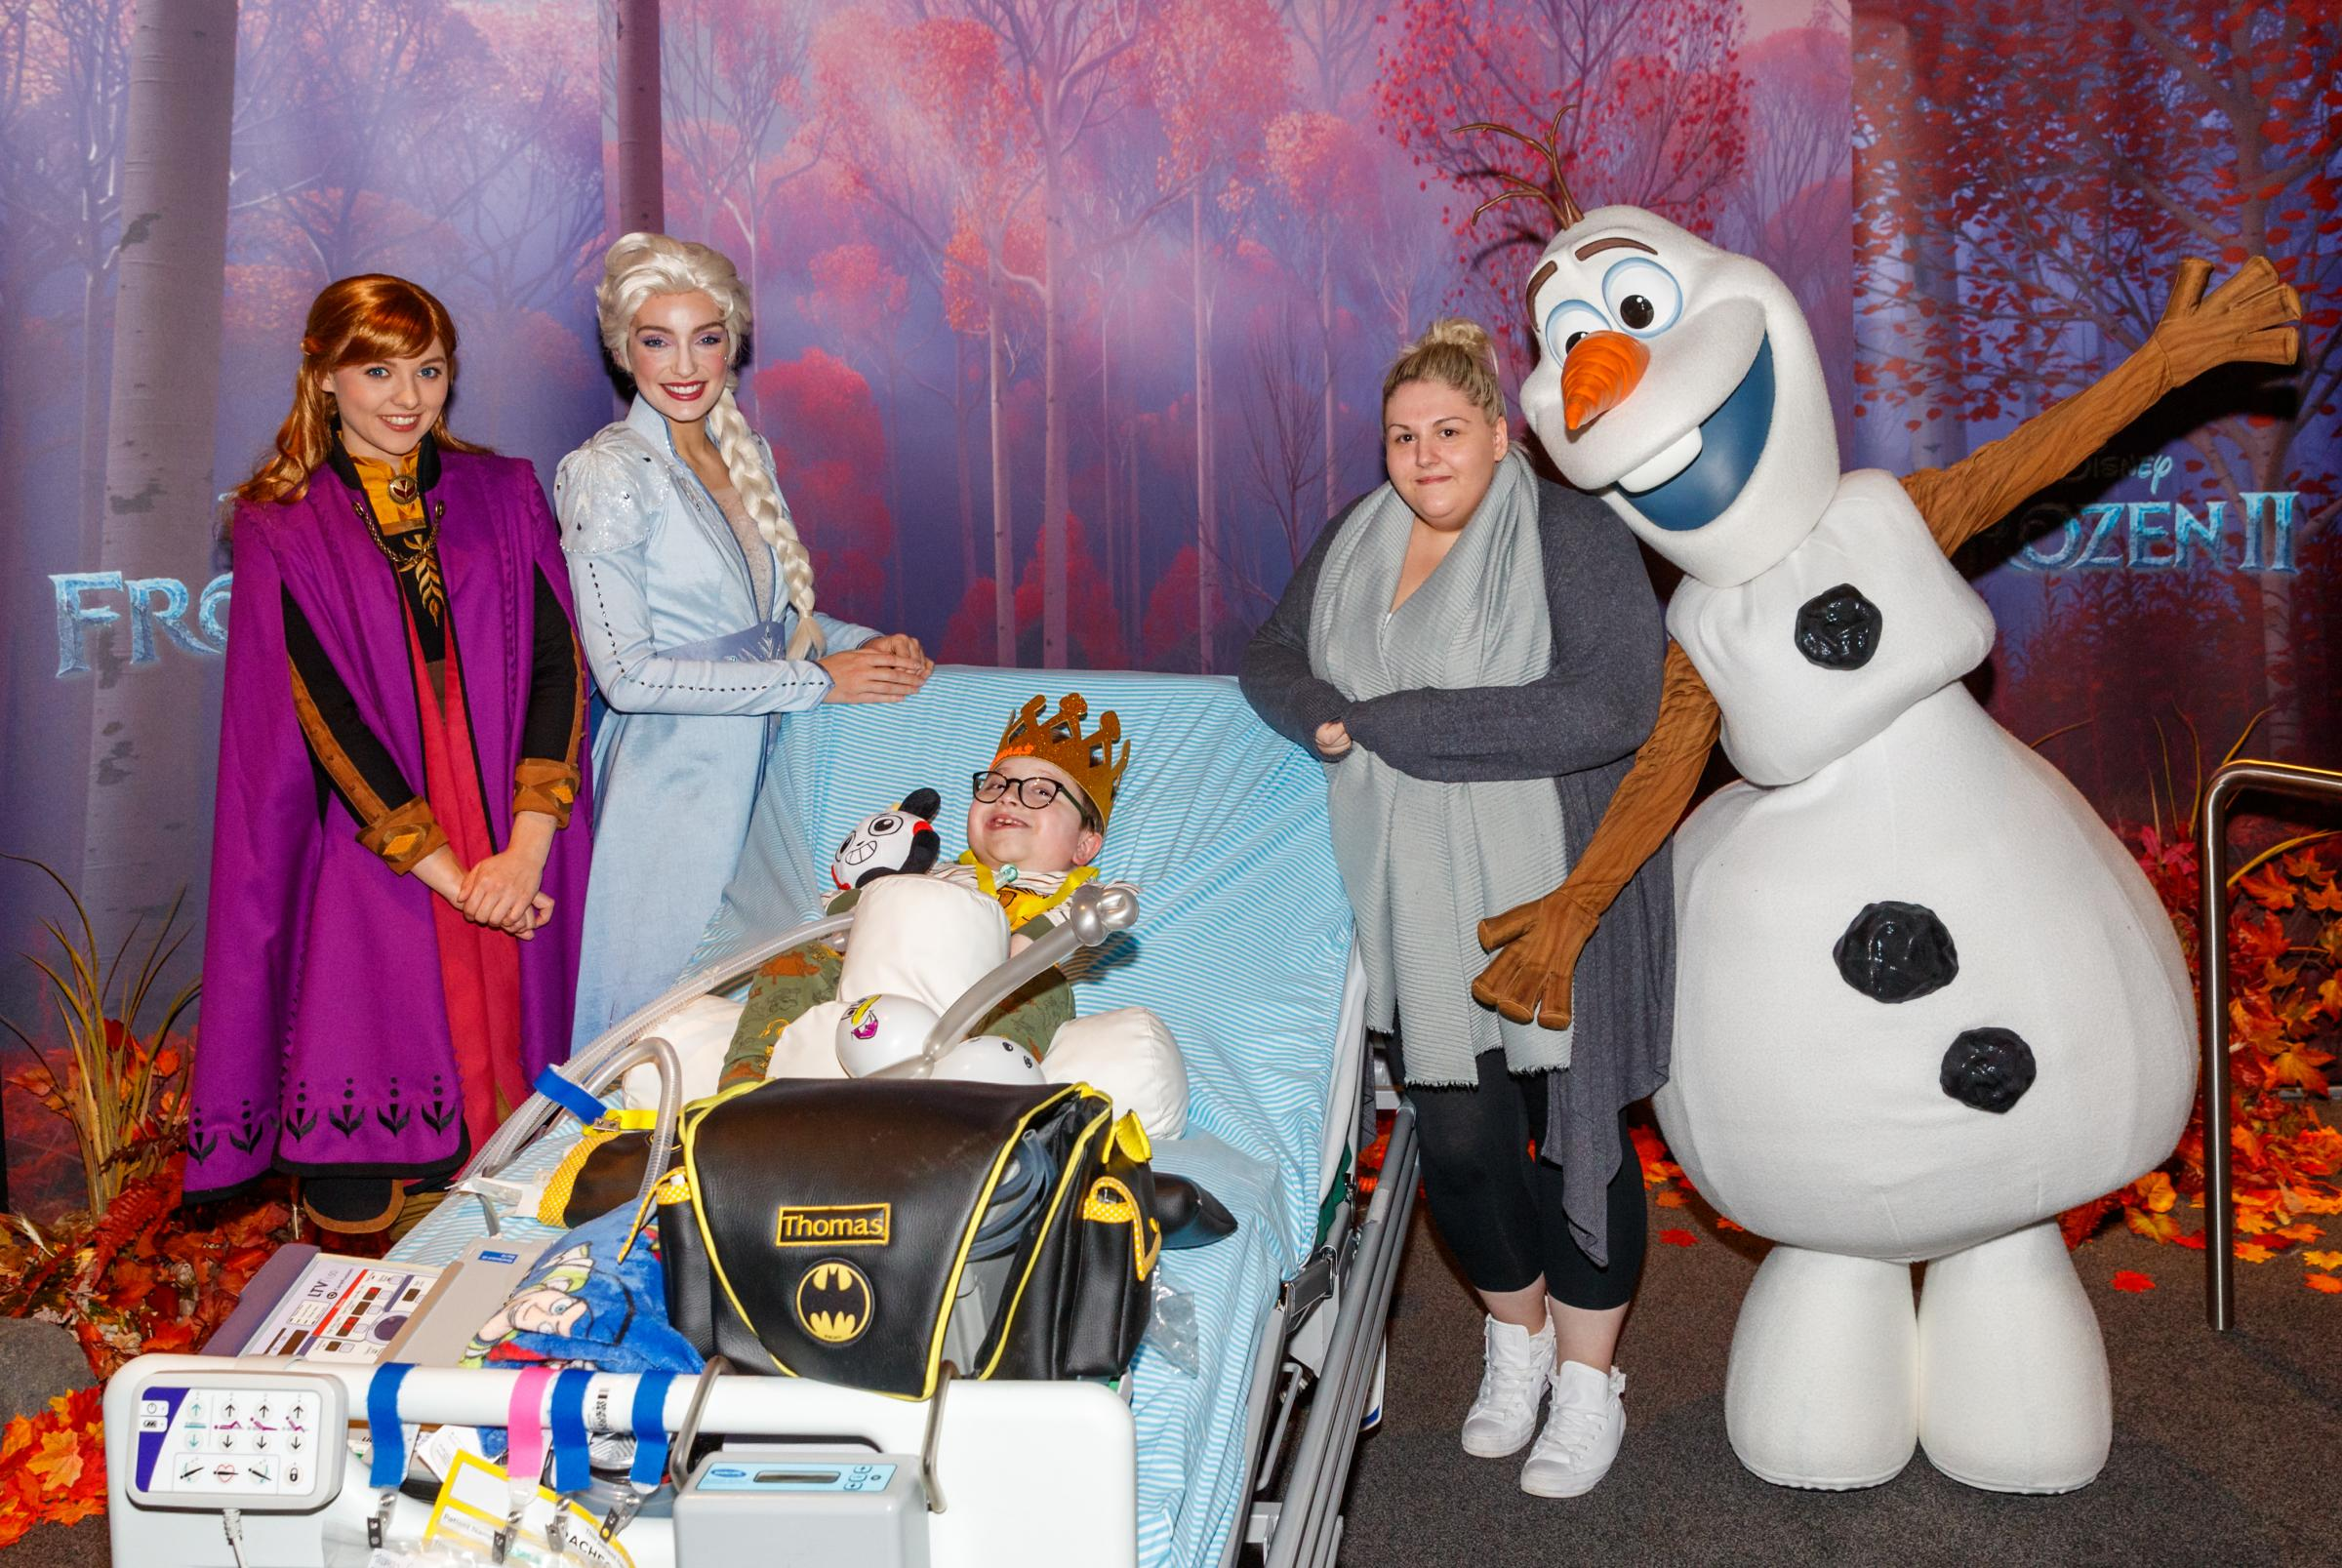 MediCinema at Glasgow hospital treats young patients to Frozen 2 screening